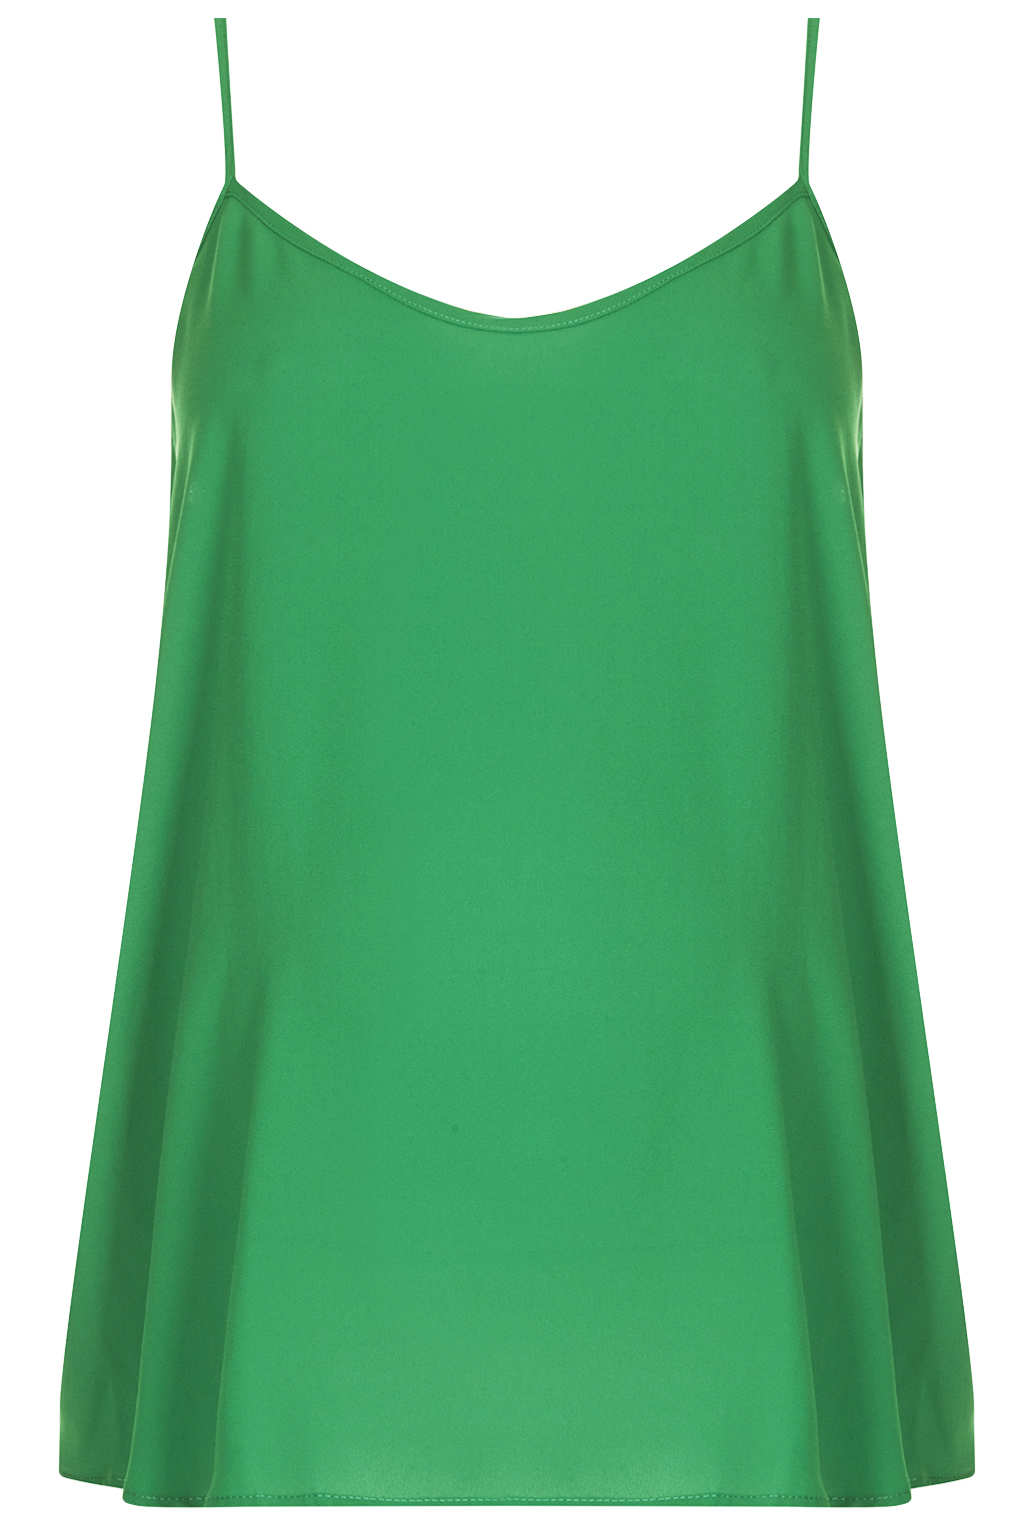 d4e9ab8ff3194 TOPSHOP Maternity Strappy Cami Top in Green - Lyst